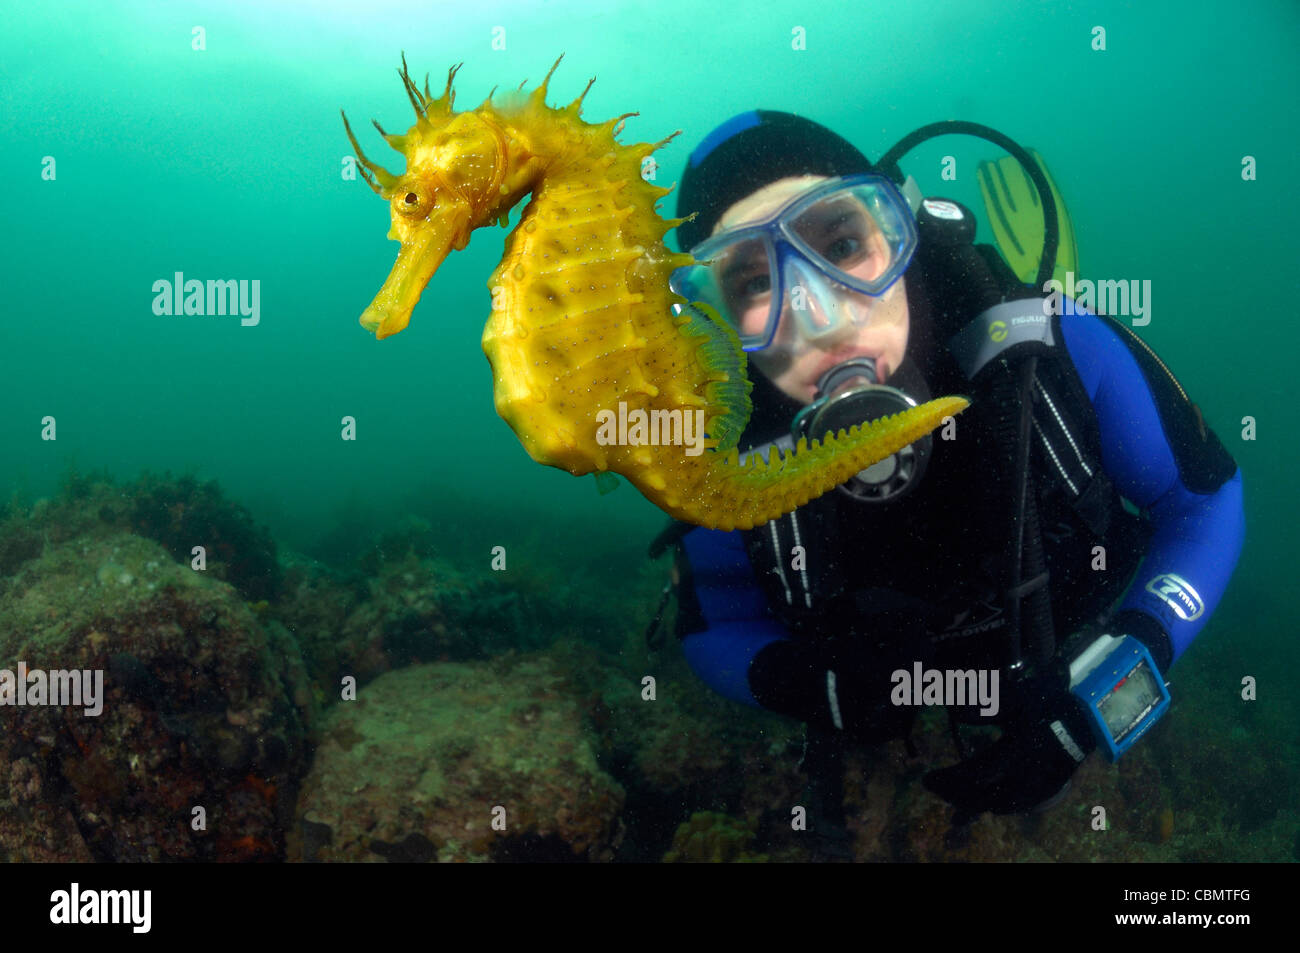 Long-snouted Seahorse and Diver, Hippocampus guttulatus, Piran, Adriatic Sea, Slovenia - Stock Image